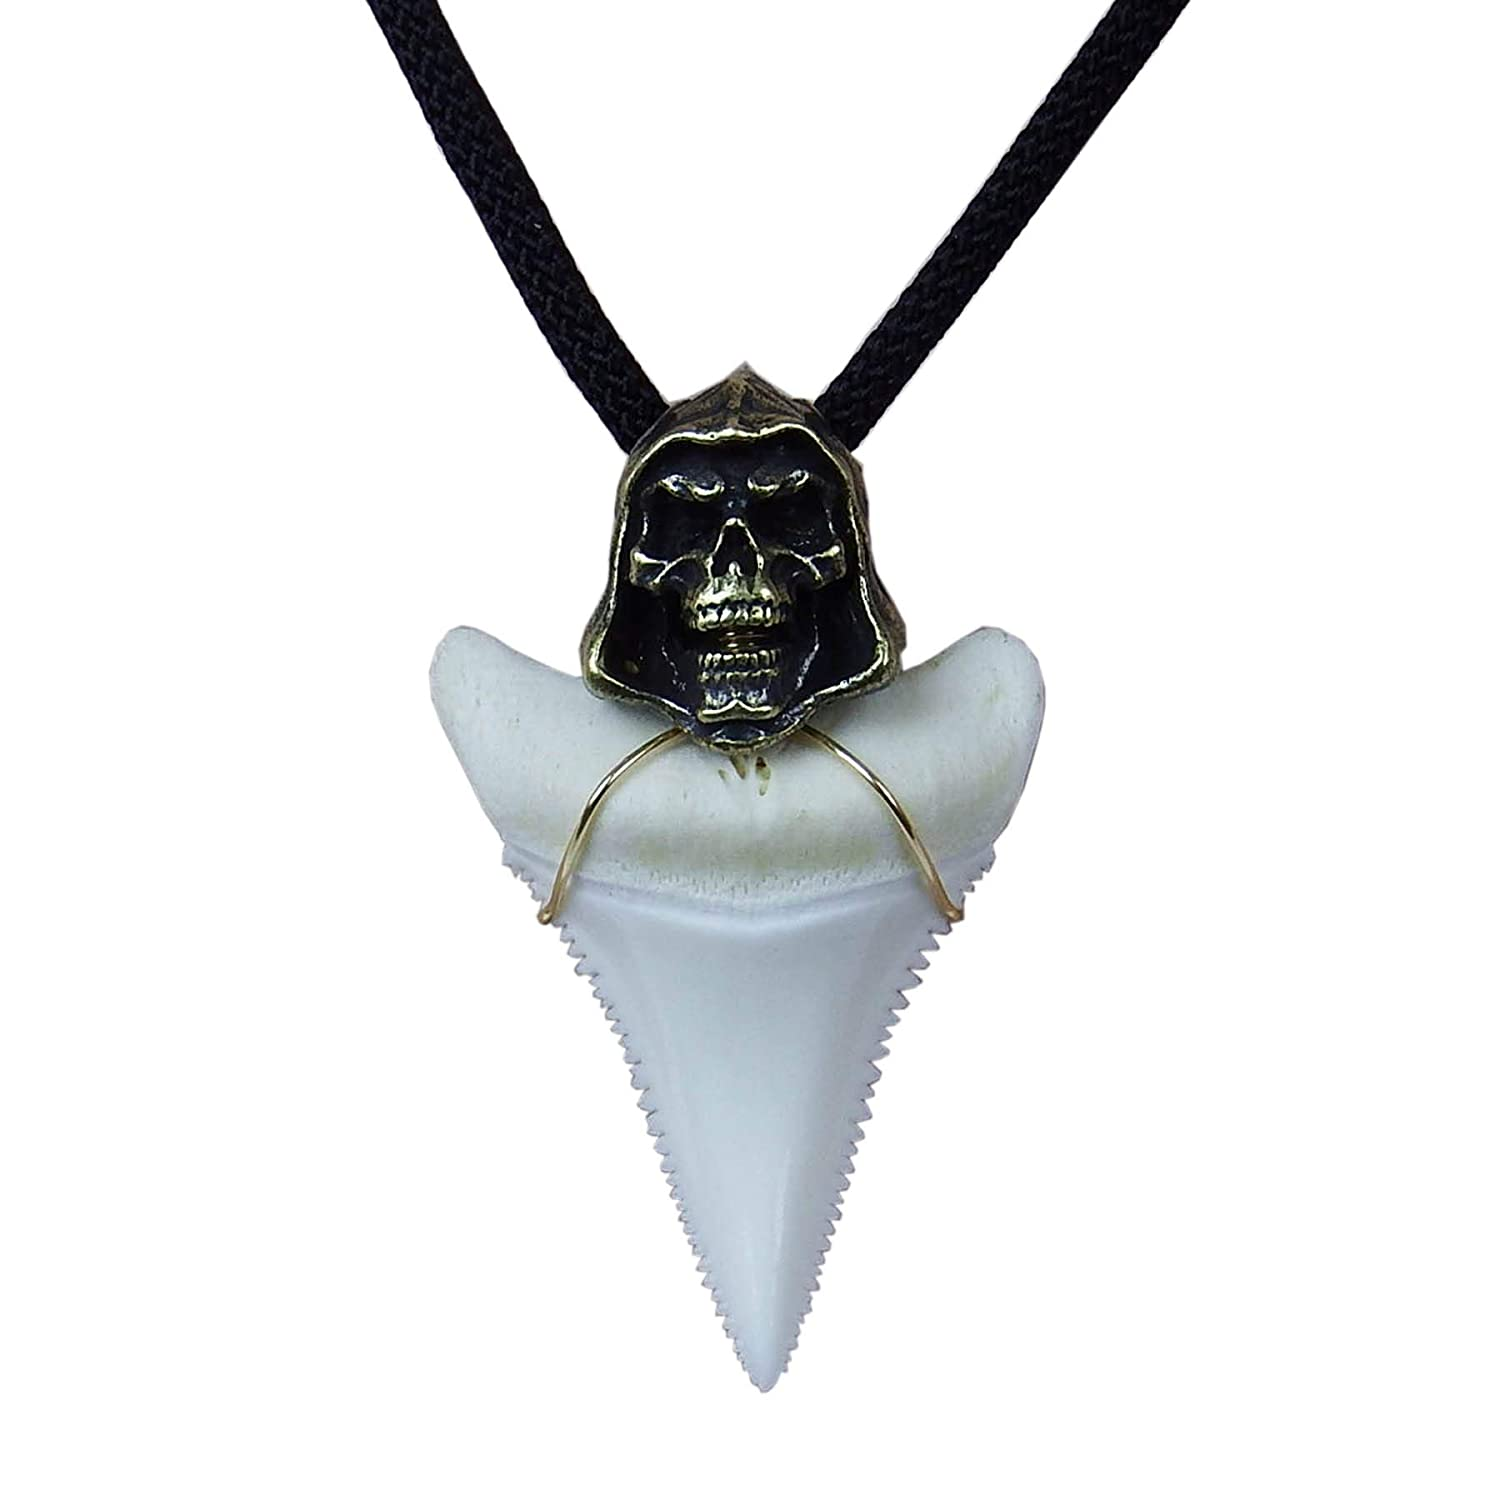 Handmade Shark Tooth Necklace for Men 1.6 inch Great Megalodon ...